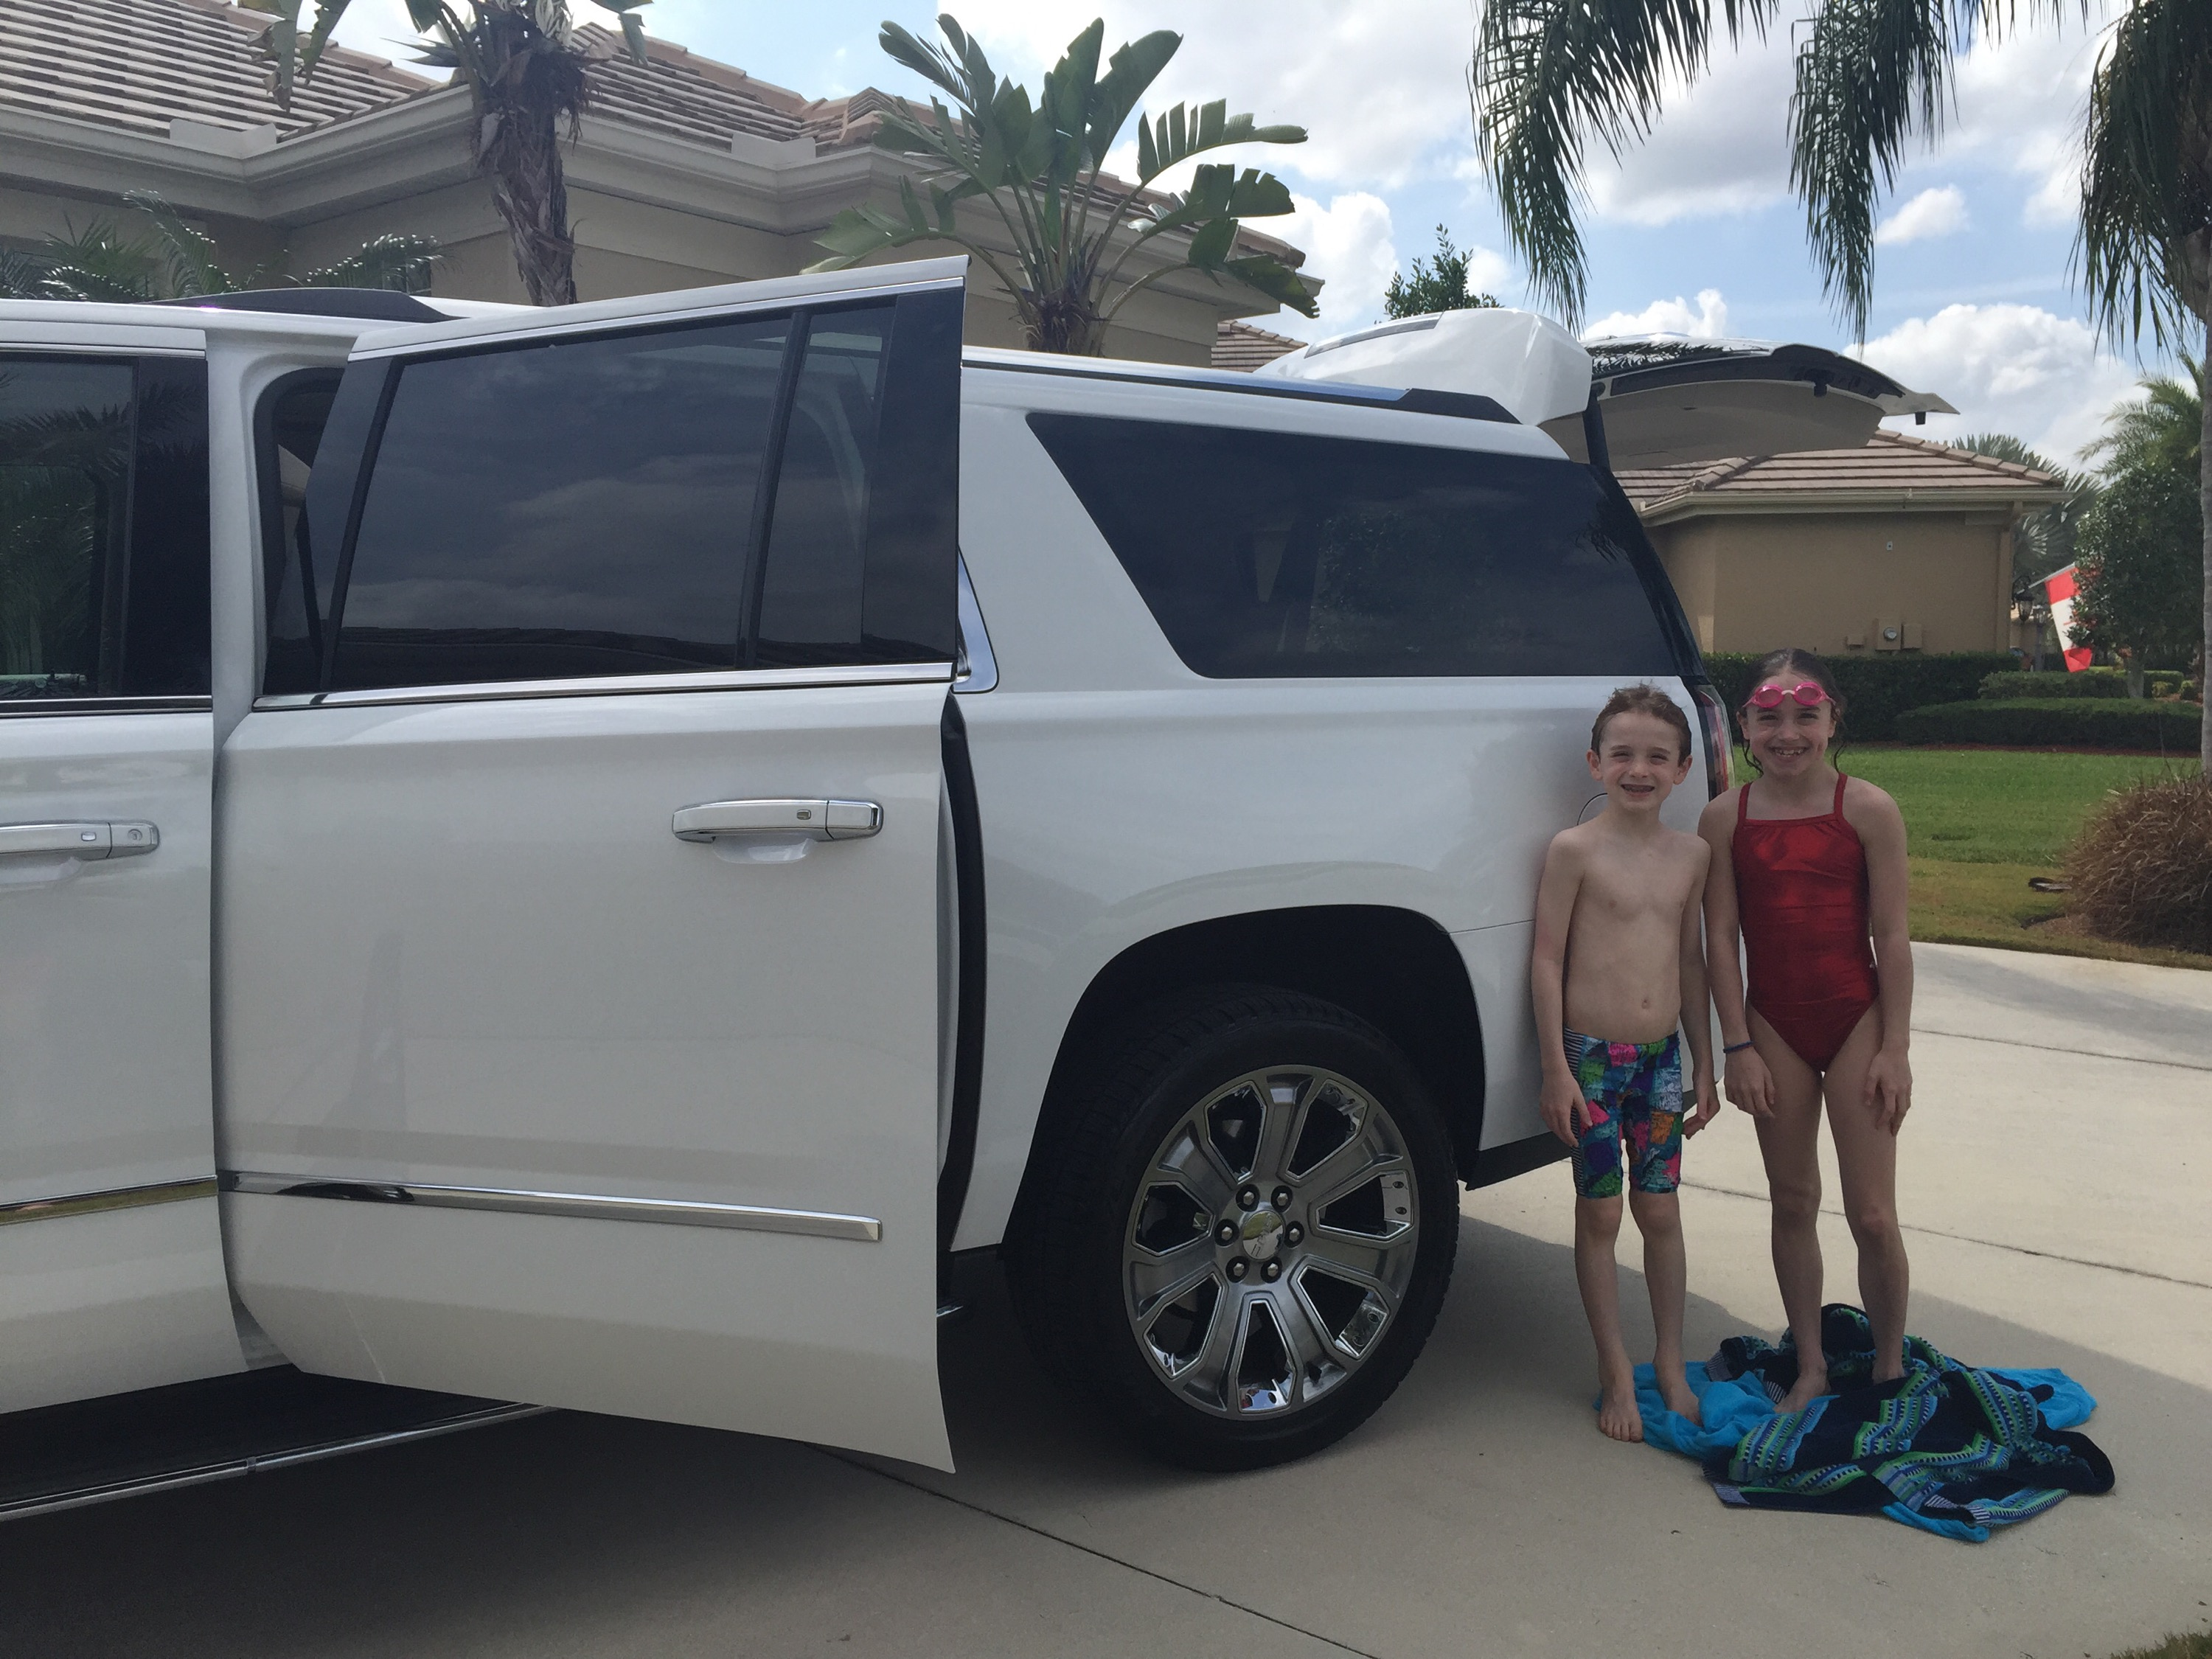 2016 GMC Yukon Denali XL Video Review and Photos